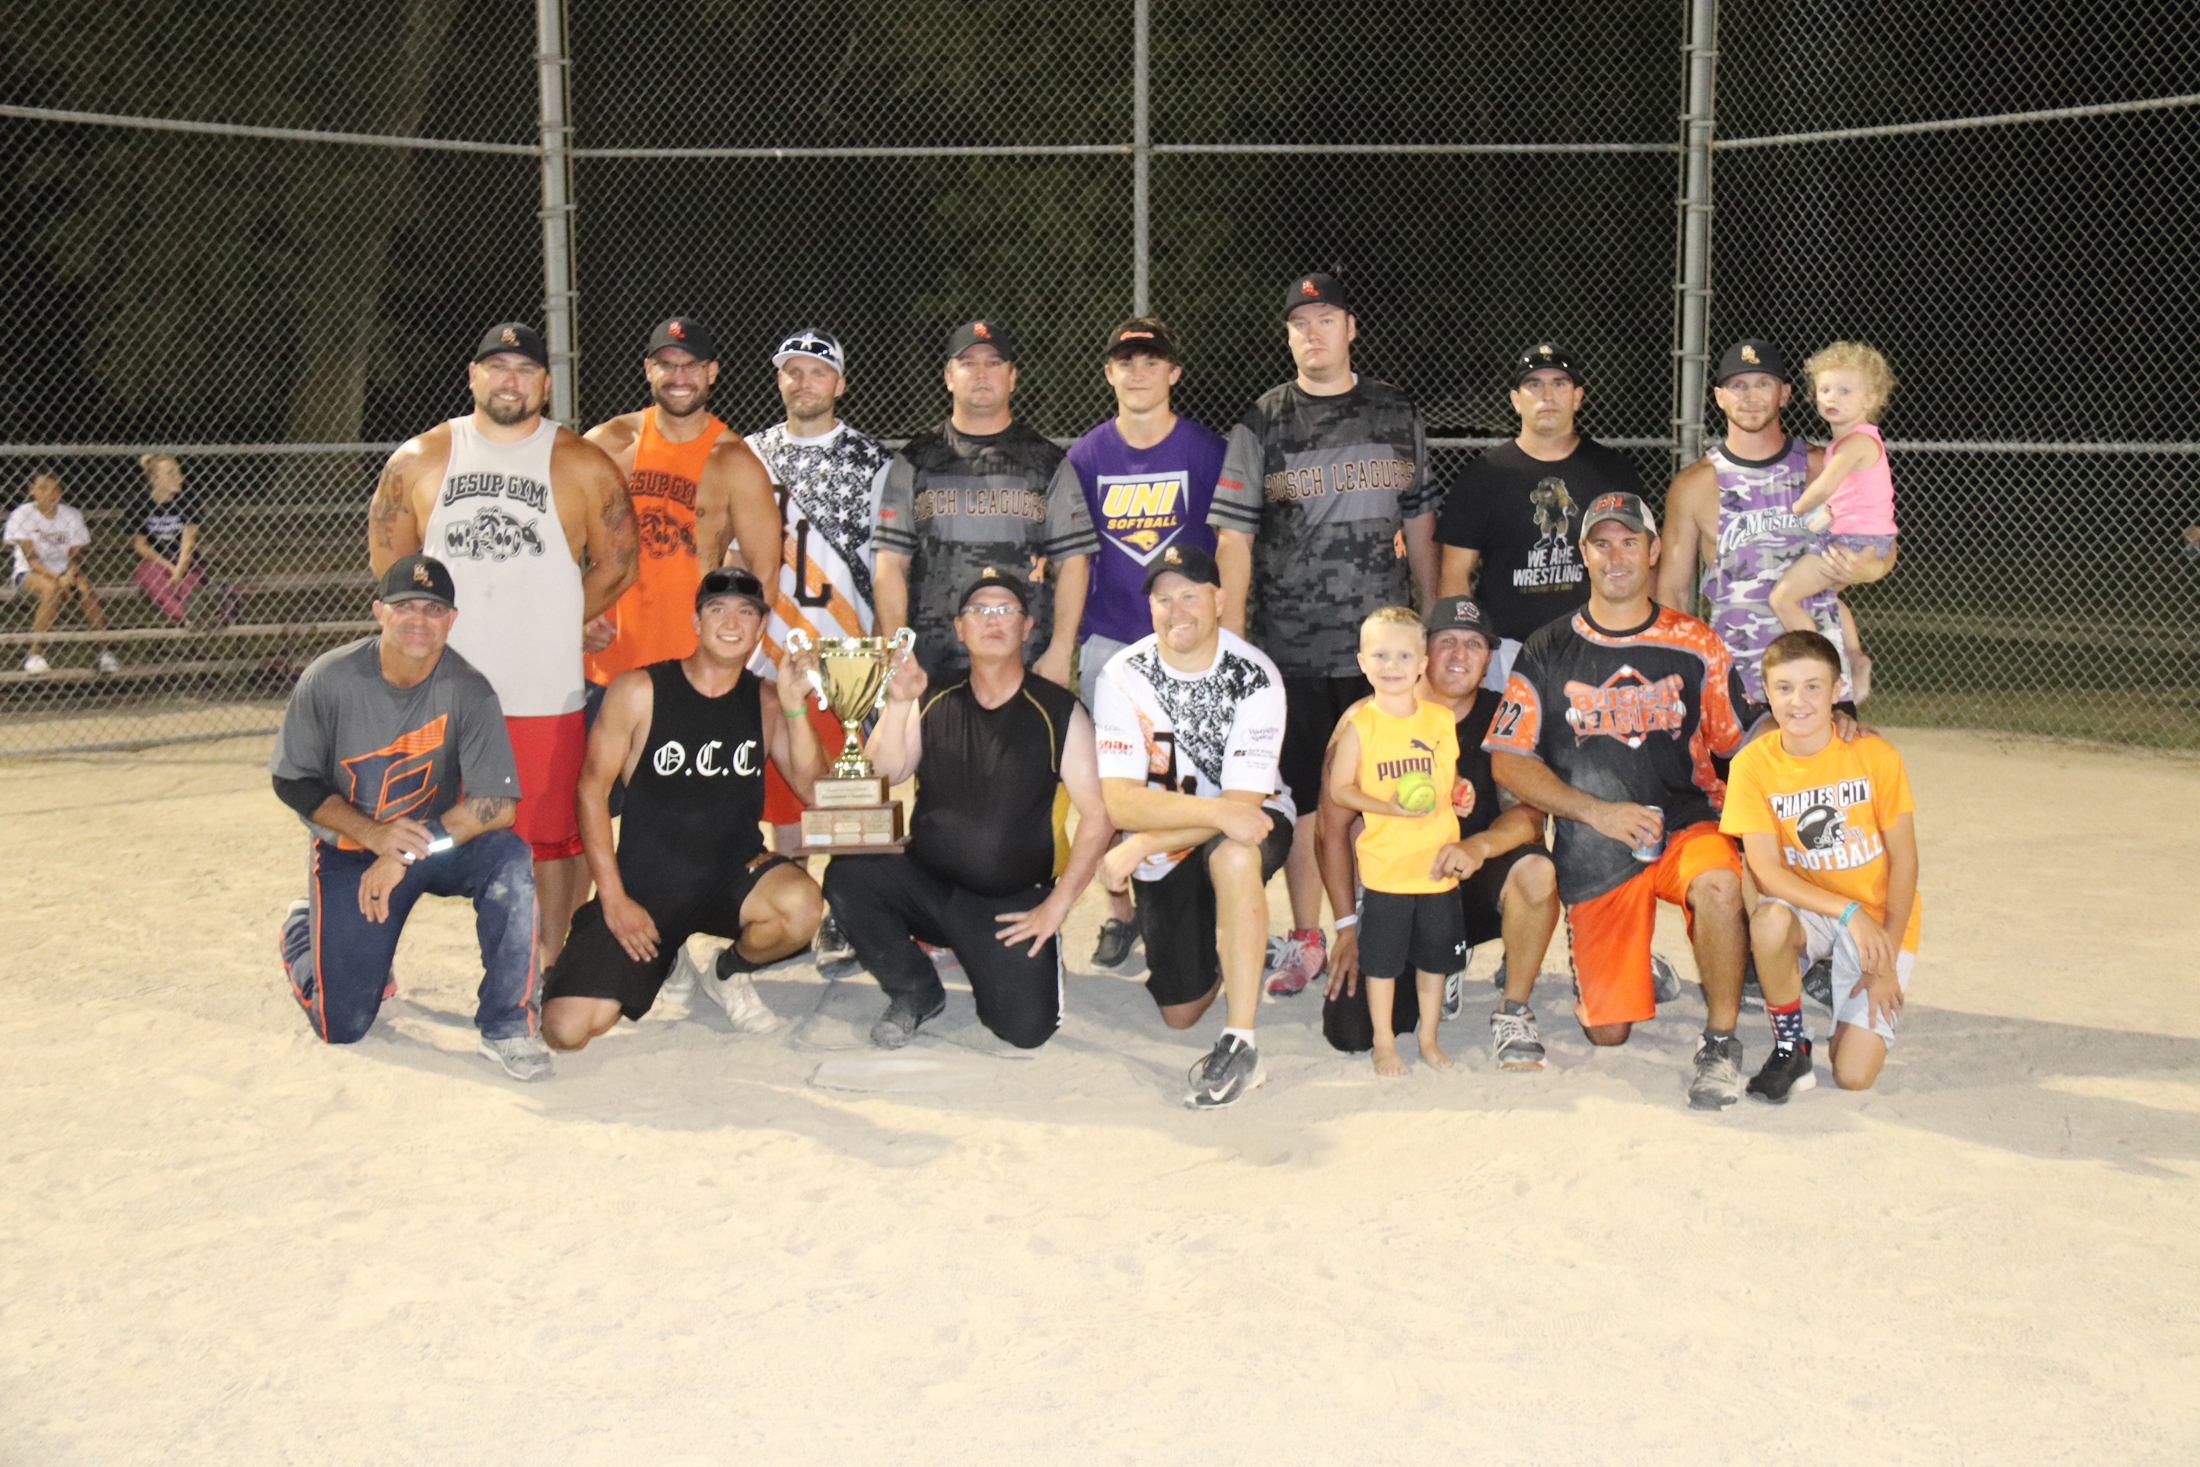 Busch Leaguers best Empire for CC Adult Softball League championship cup